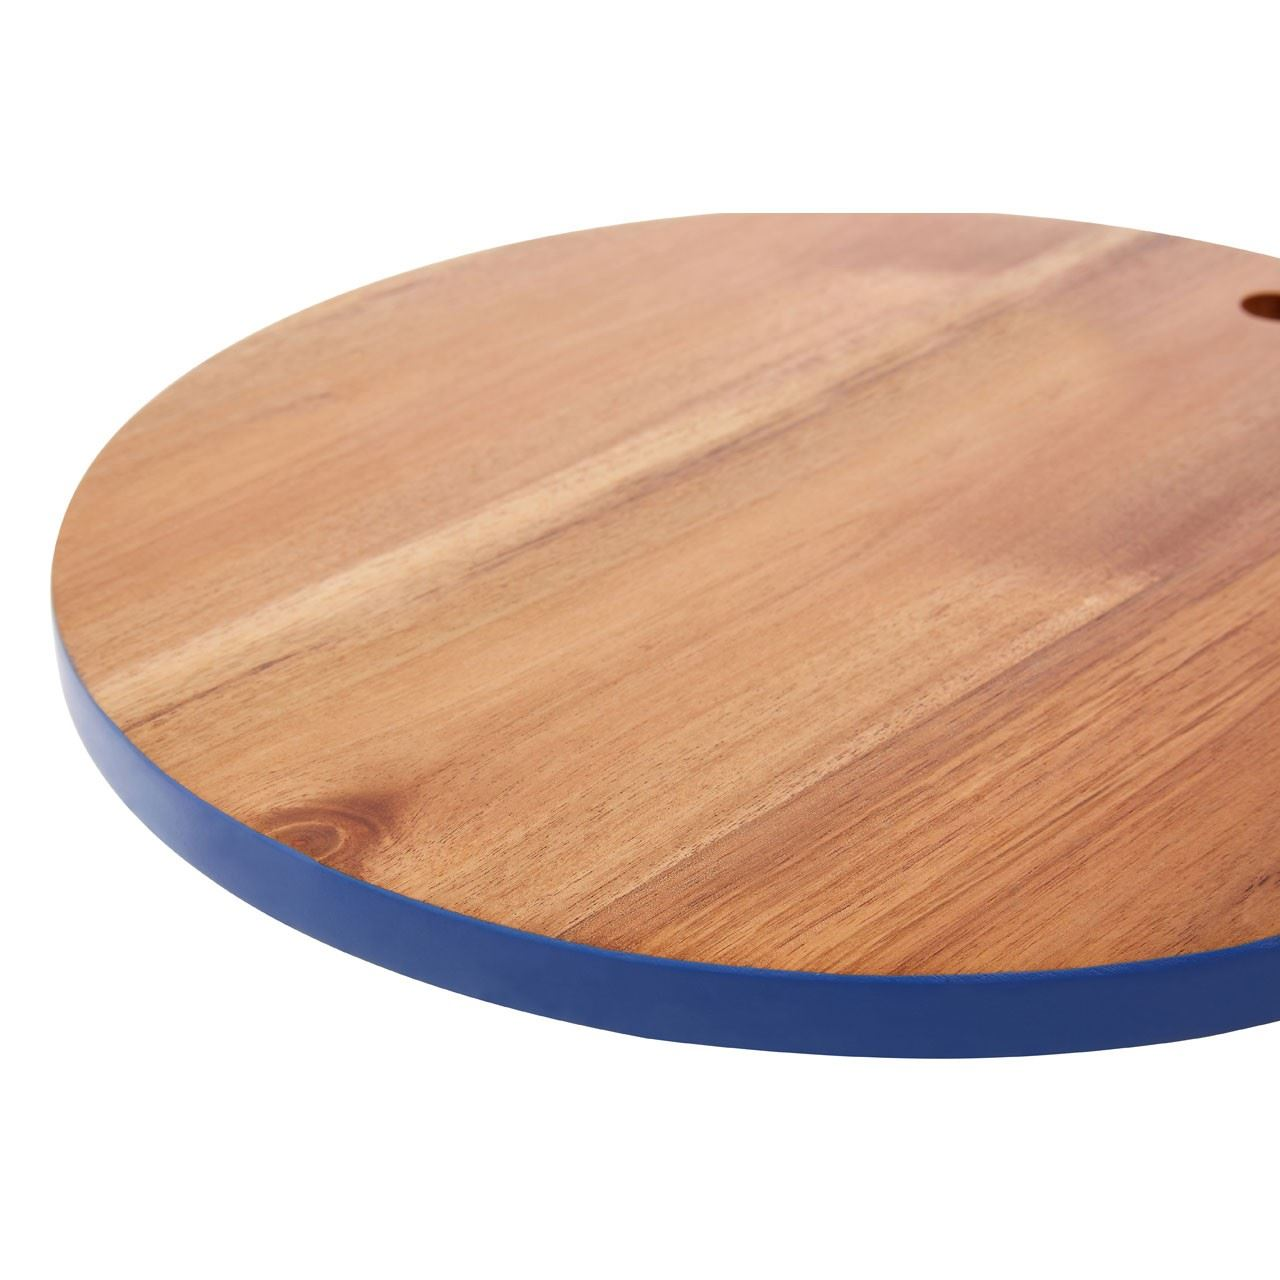 Chopping-Boards-Wooden-Cutting-Serving-Naturally-Antibacterial thumbnail 7